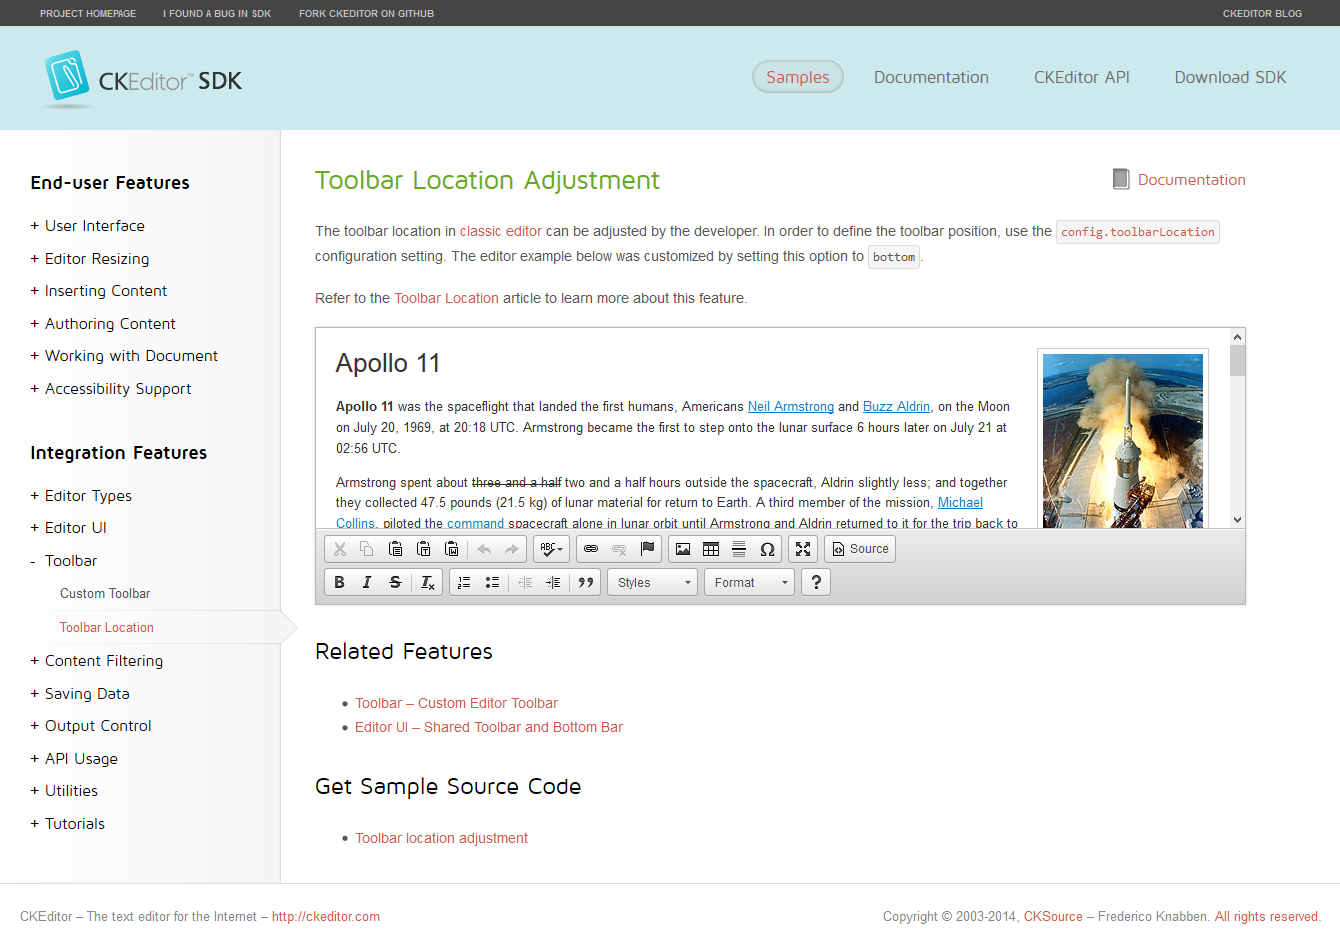 The SKEditor SDK page